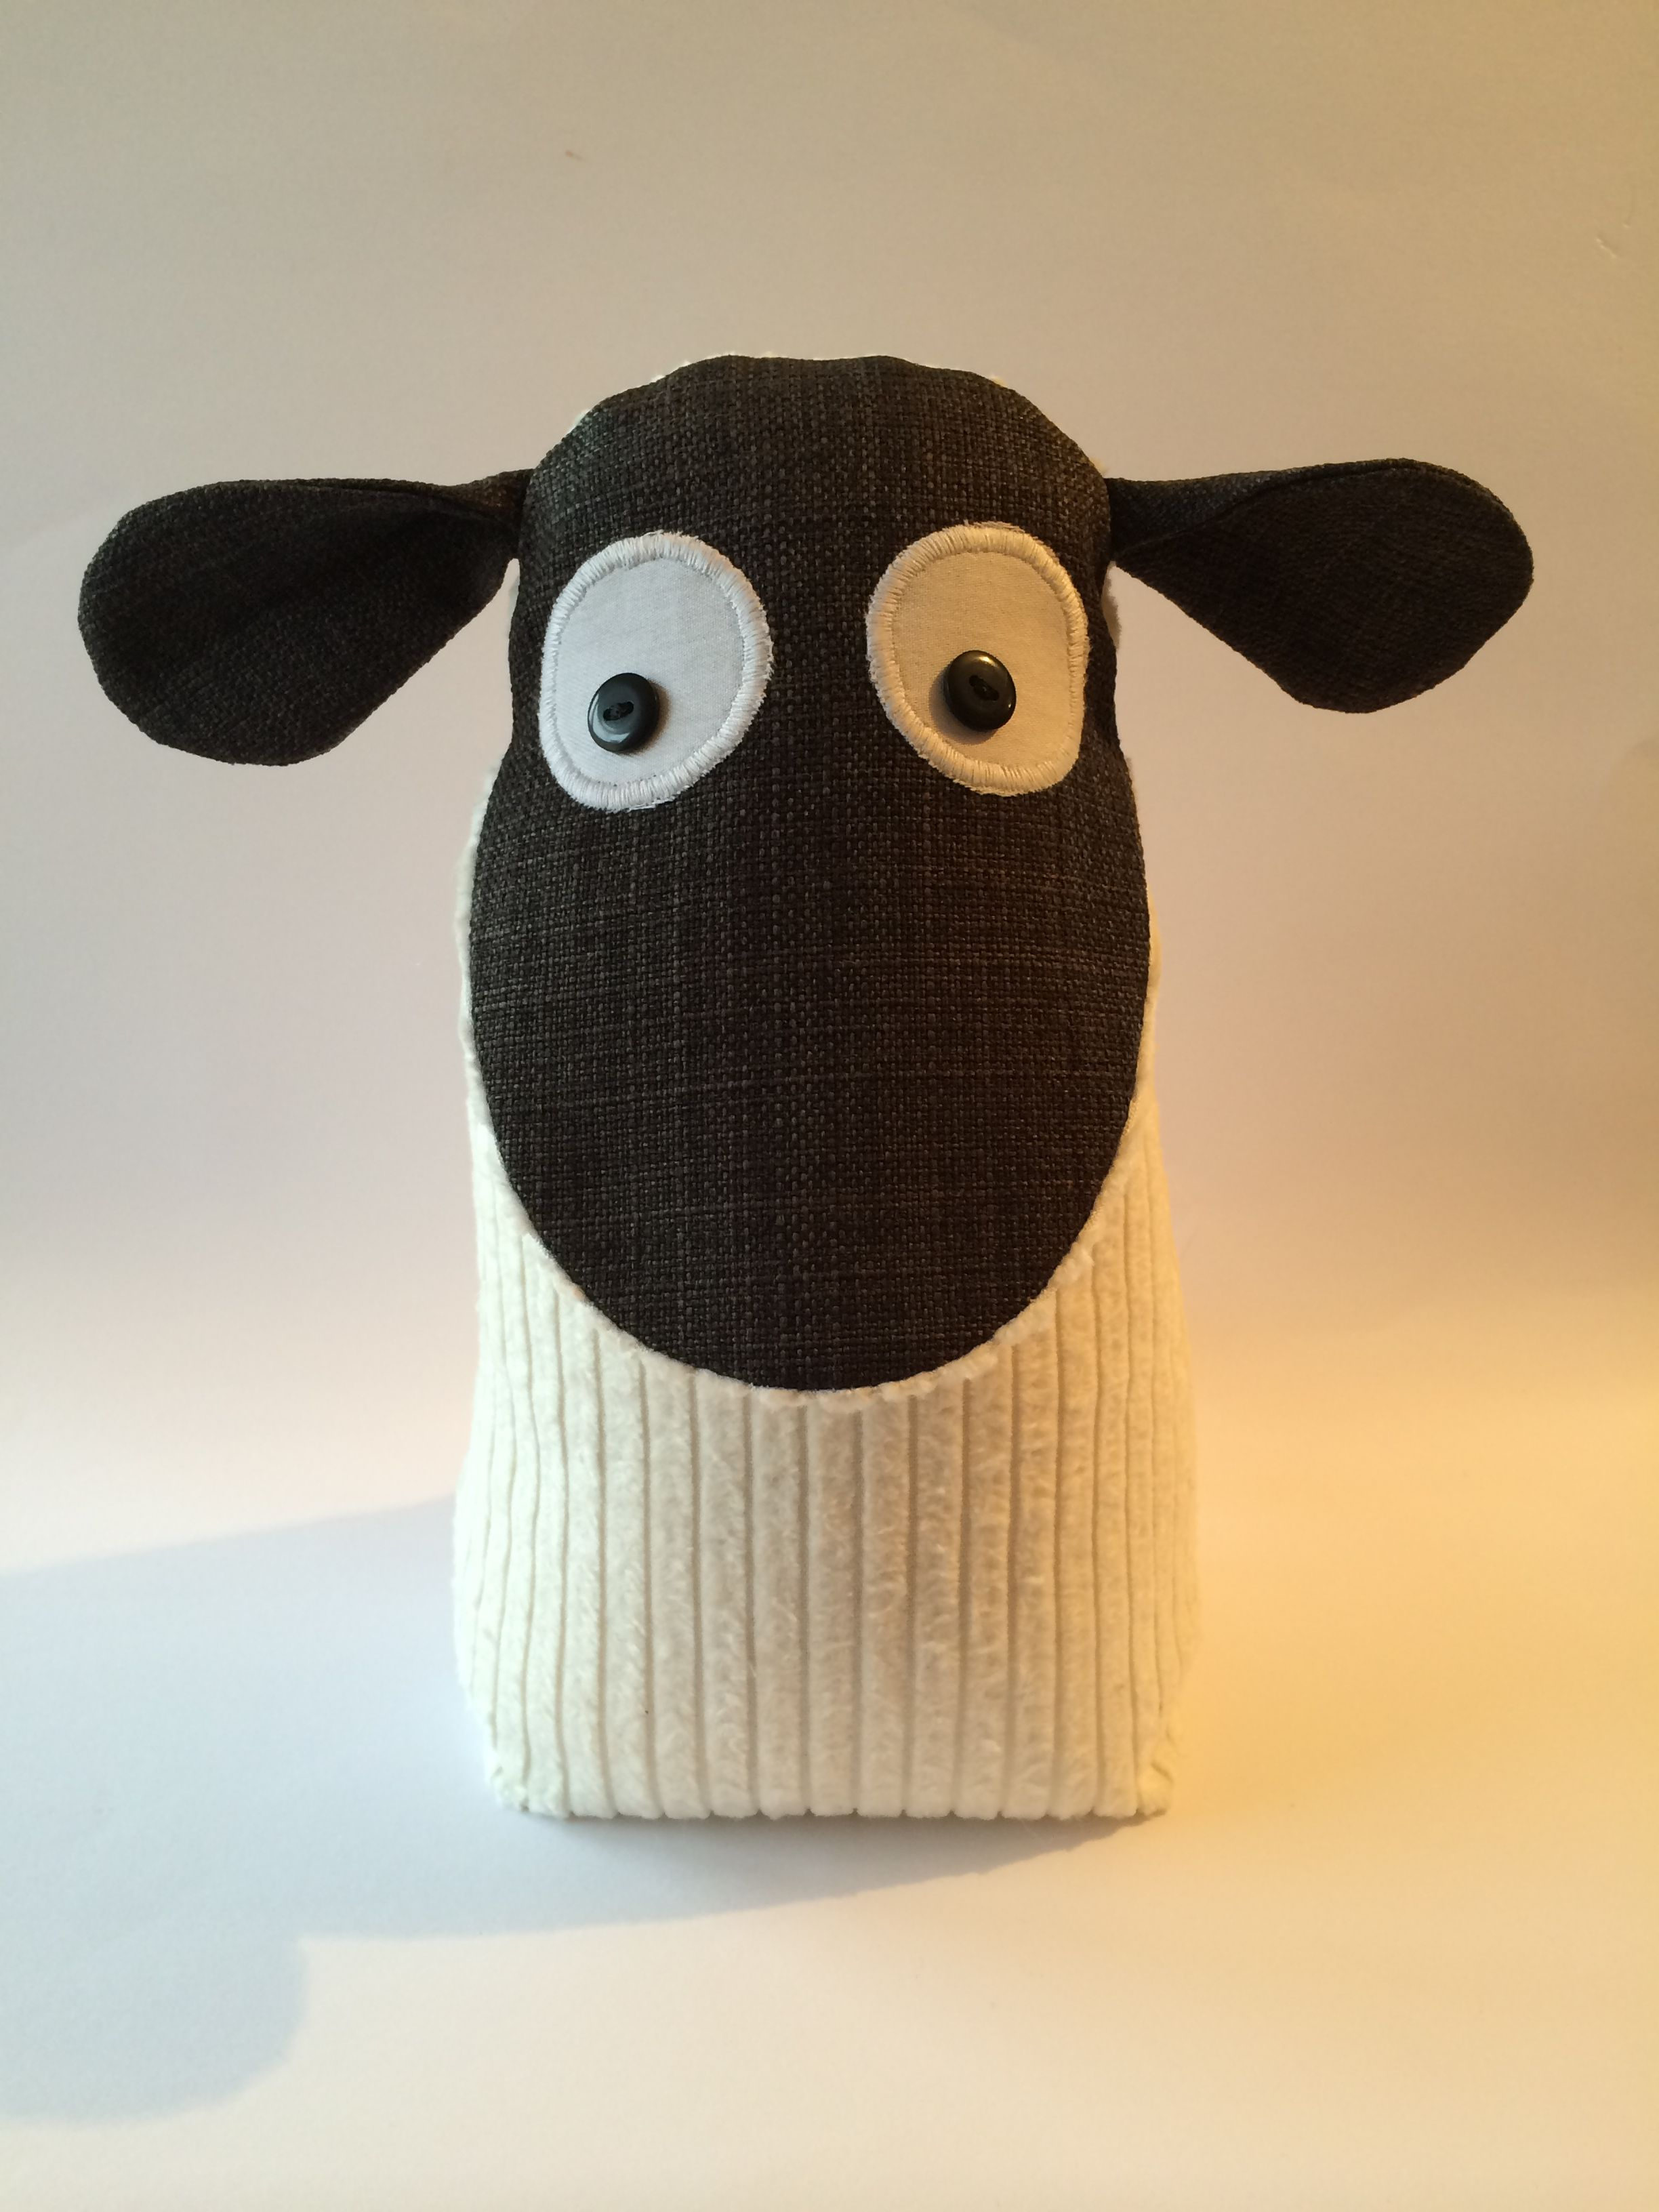 Sheep Door Stop. Take From Facebook Page A Bundle Of Crafts. Pop Over &